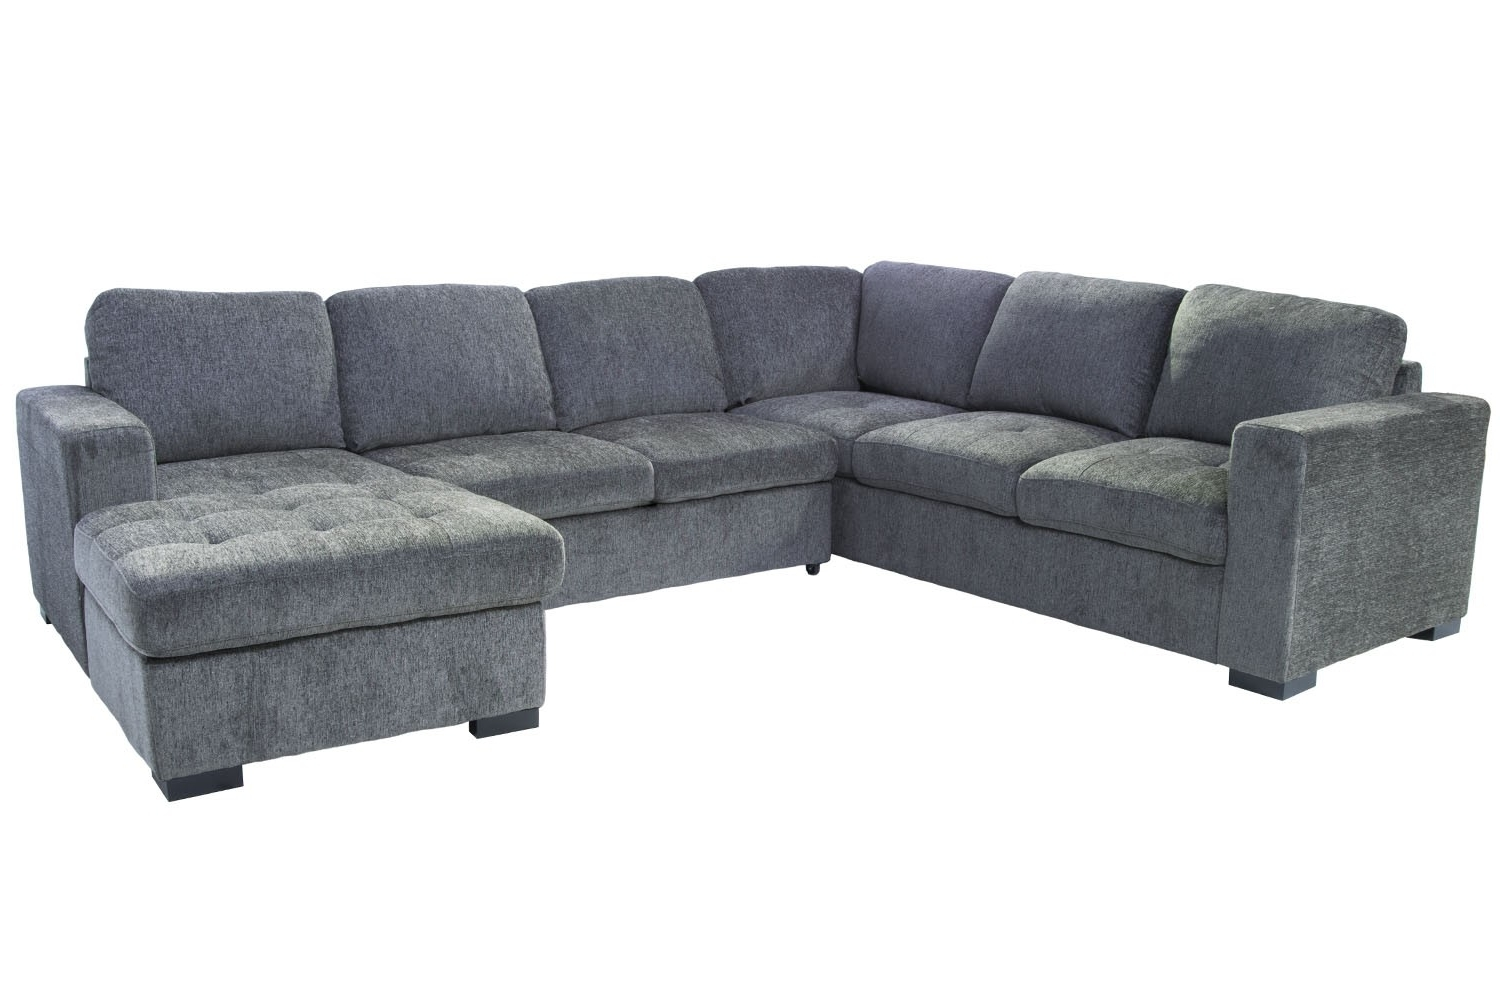 Mor Furniture For Less (View 5 of 15)